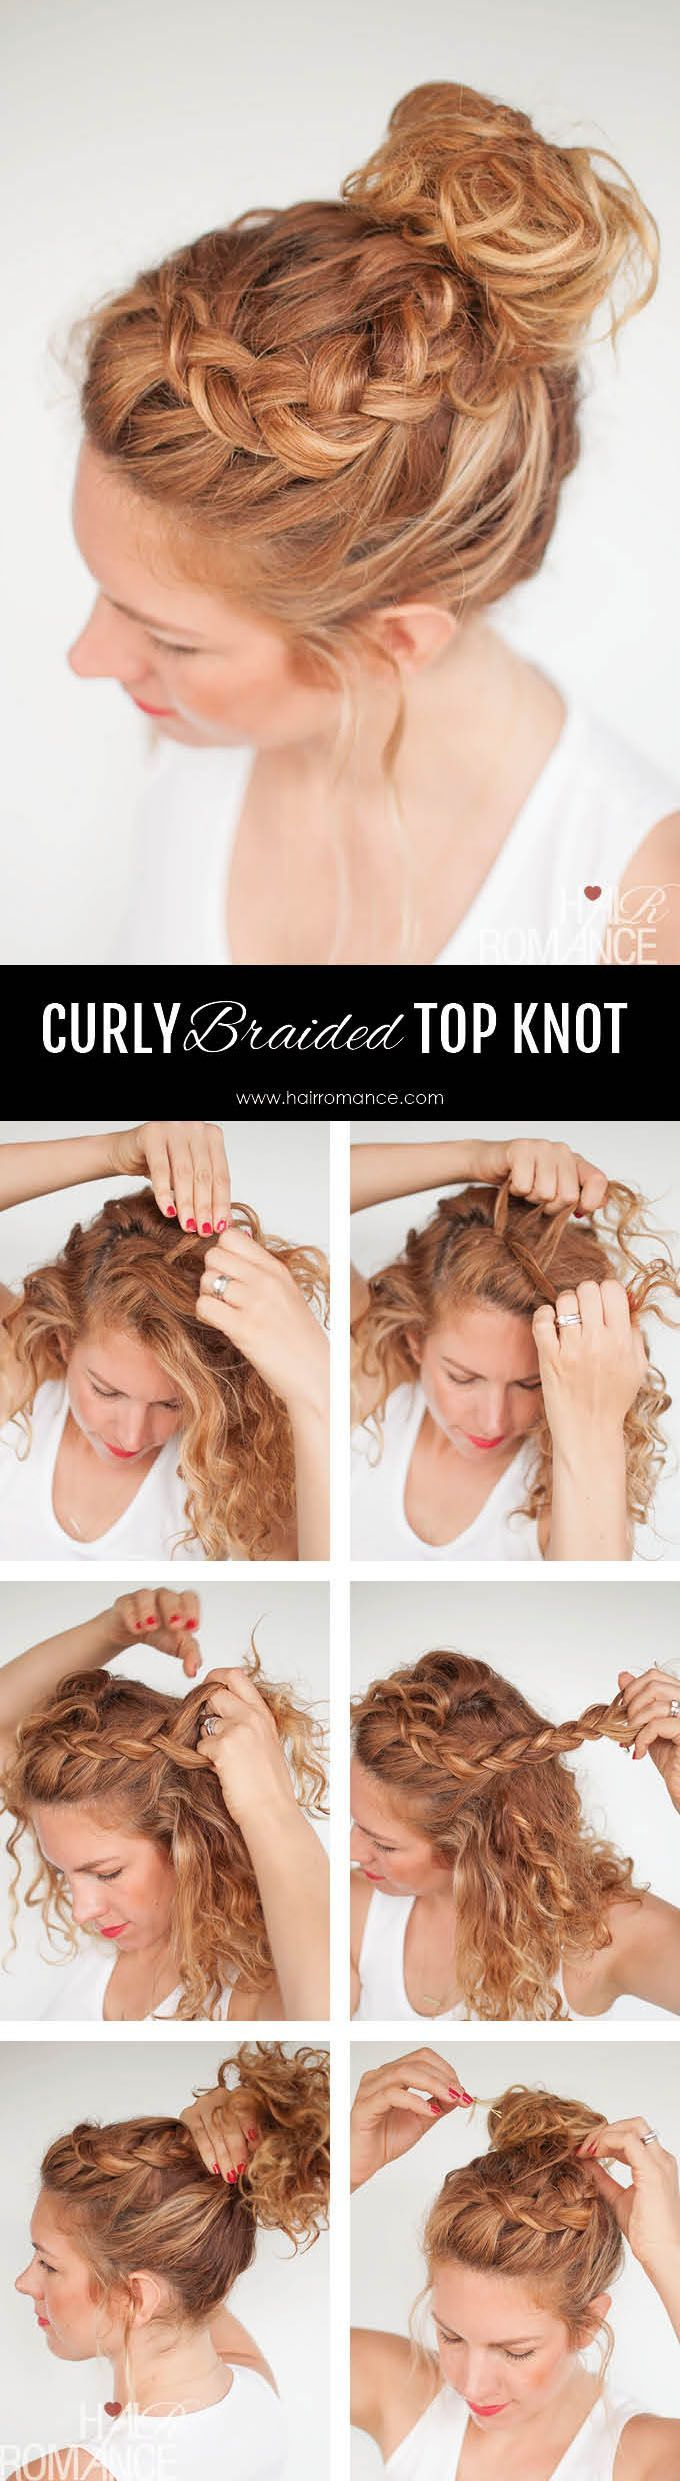 Everyday curly hairstyles – Curly Braided Top Knot Hairstyle Tutorial – Amira Lou